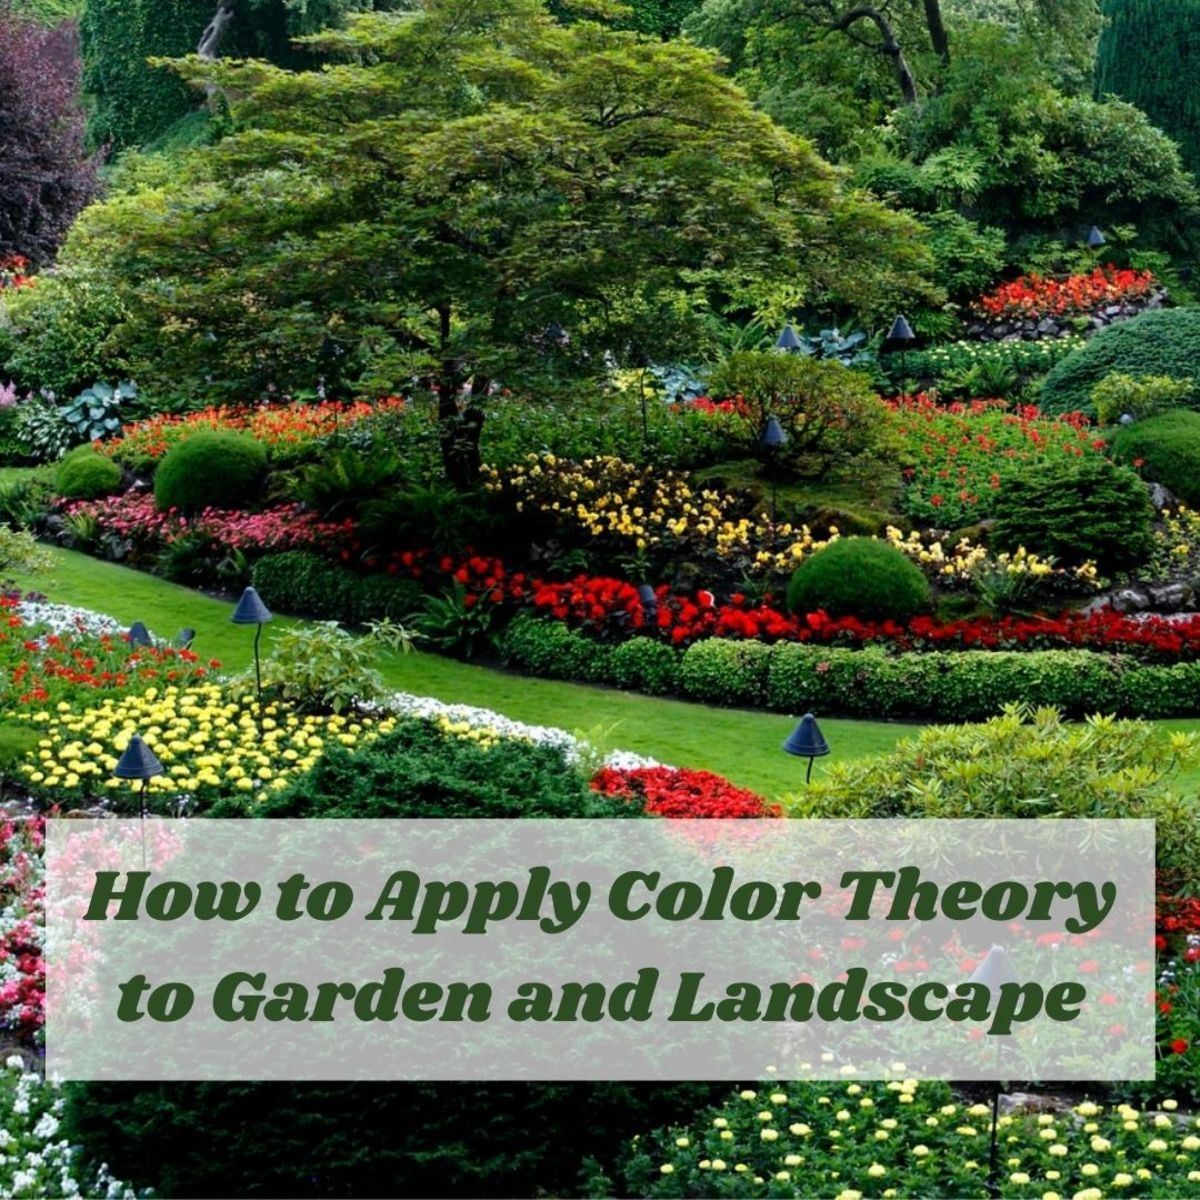 There are three basic principles when talking about color and color theory: the color wheel, color harmony, and context or application of its use.